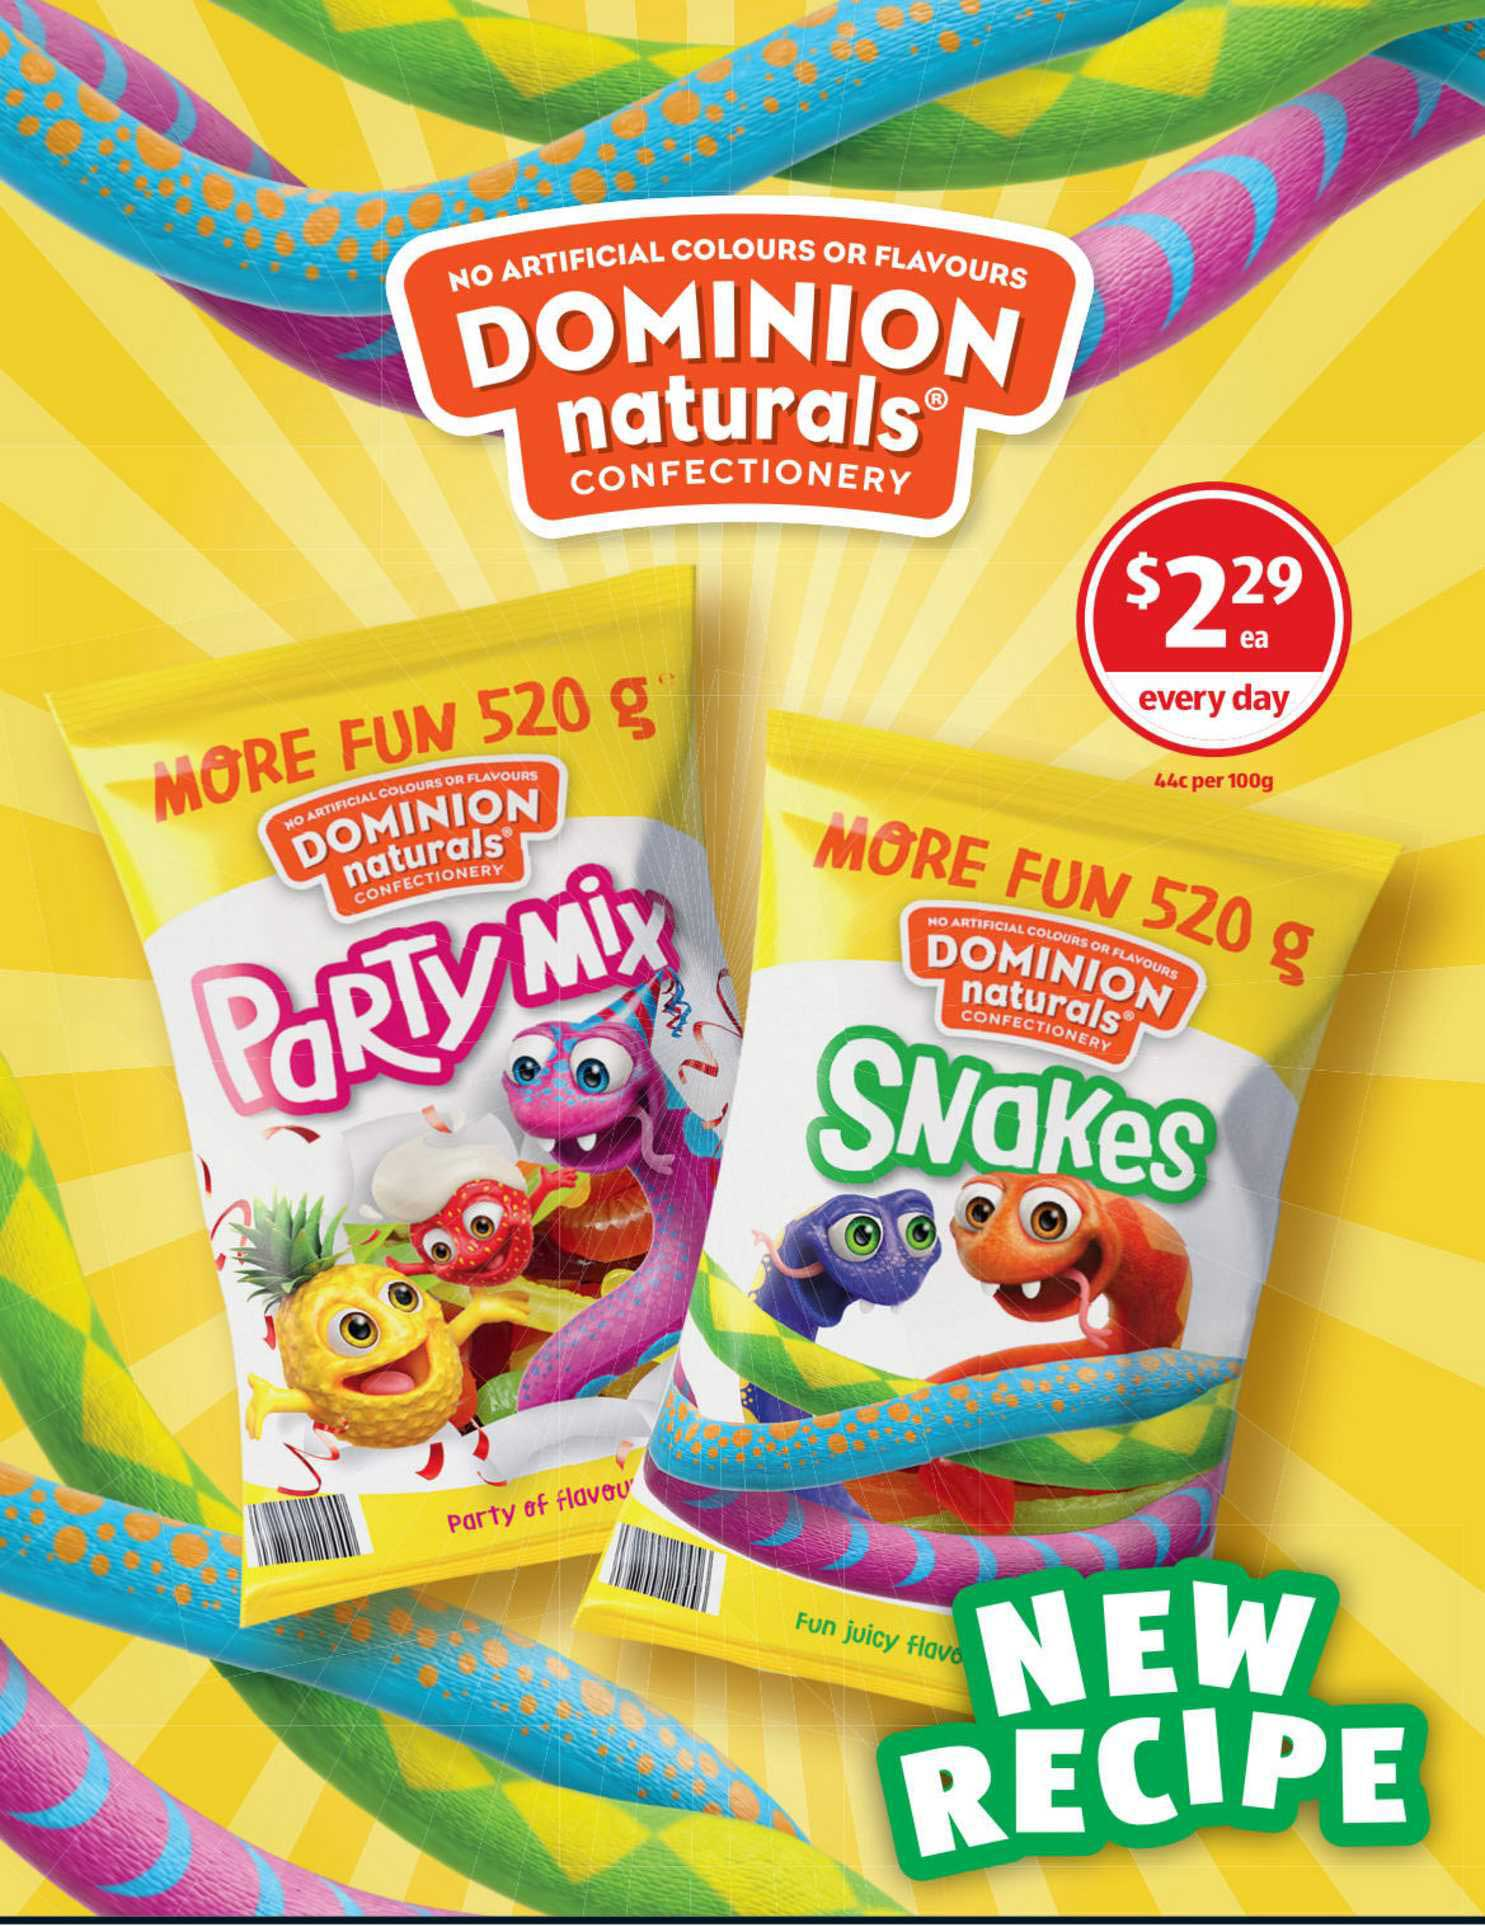 ALDI Dominion Naturals Party Mix Or Snakes